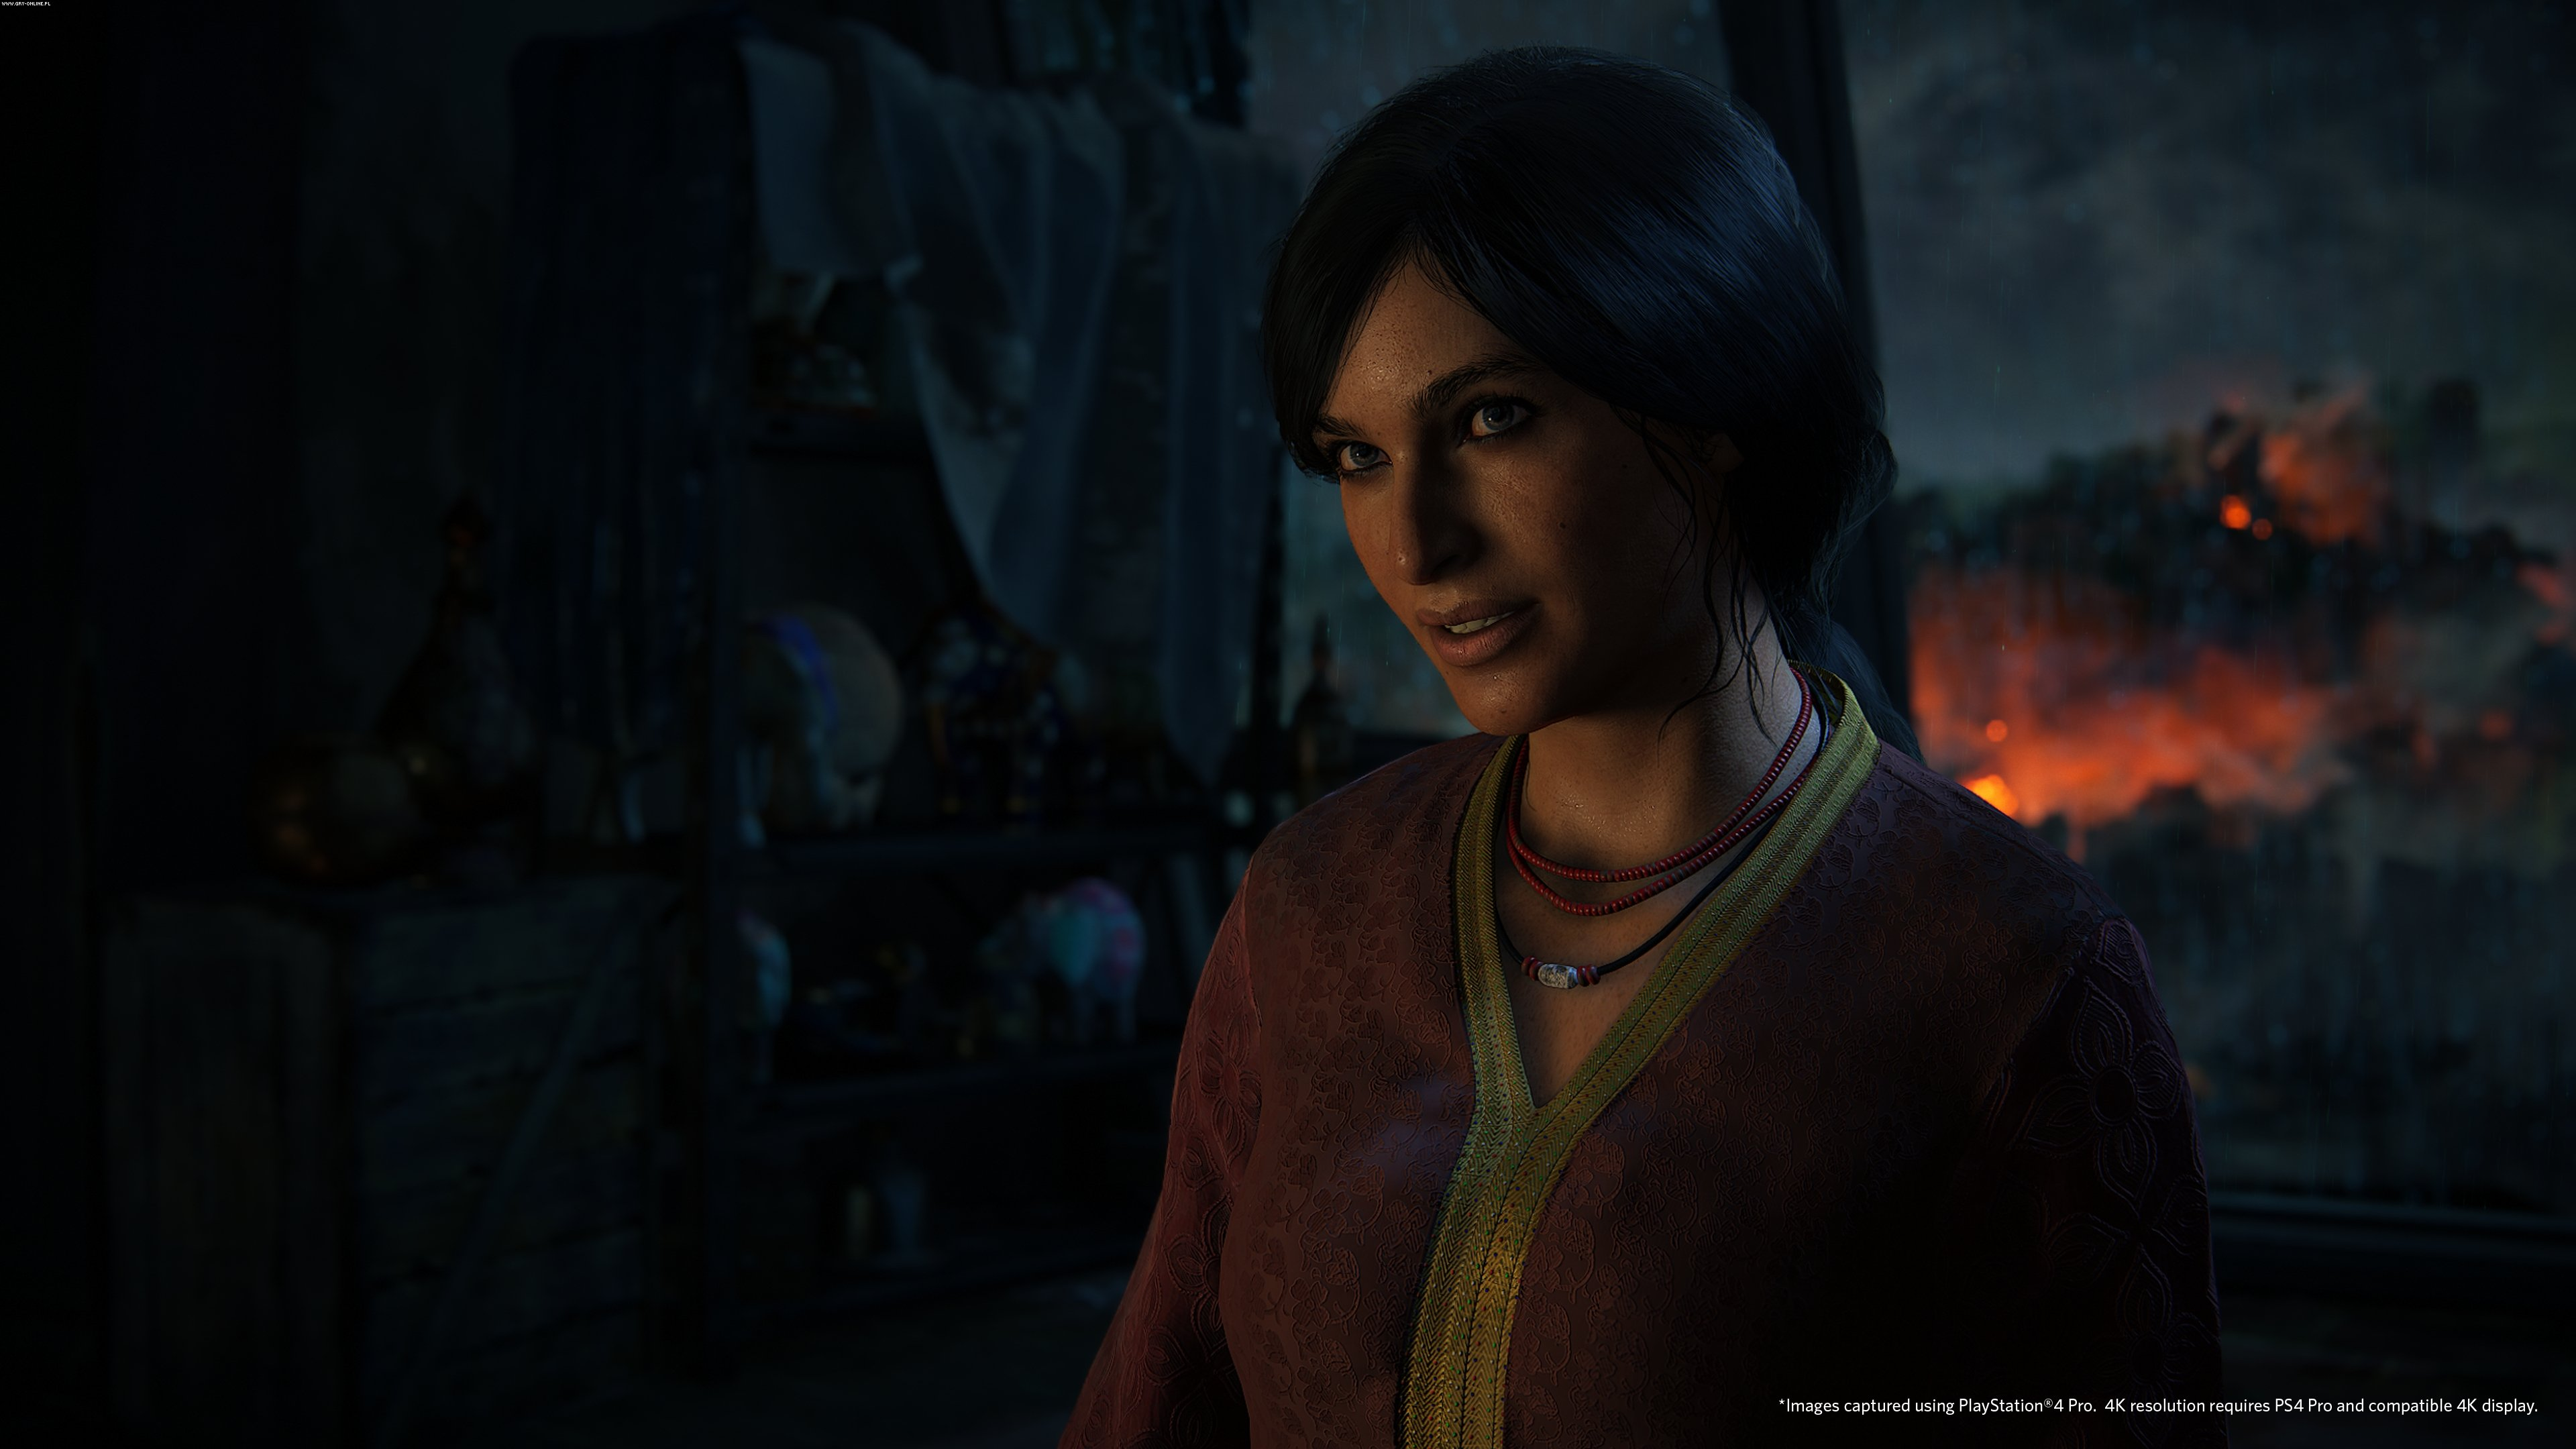 Uncharted: The Lost Legacy PS4 Games Image 12/29, Naughty Dog, Sony Interactive Entertainment